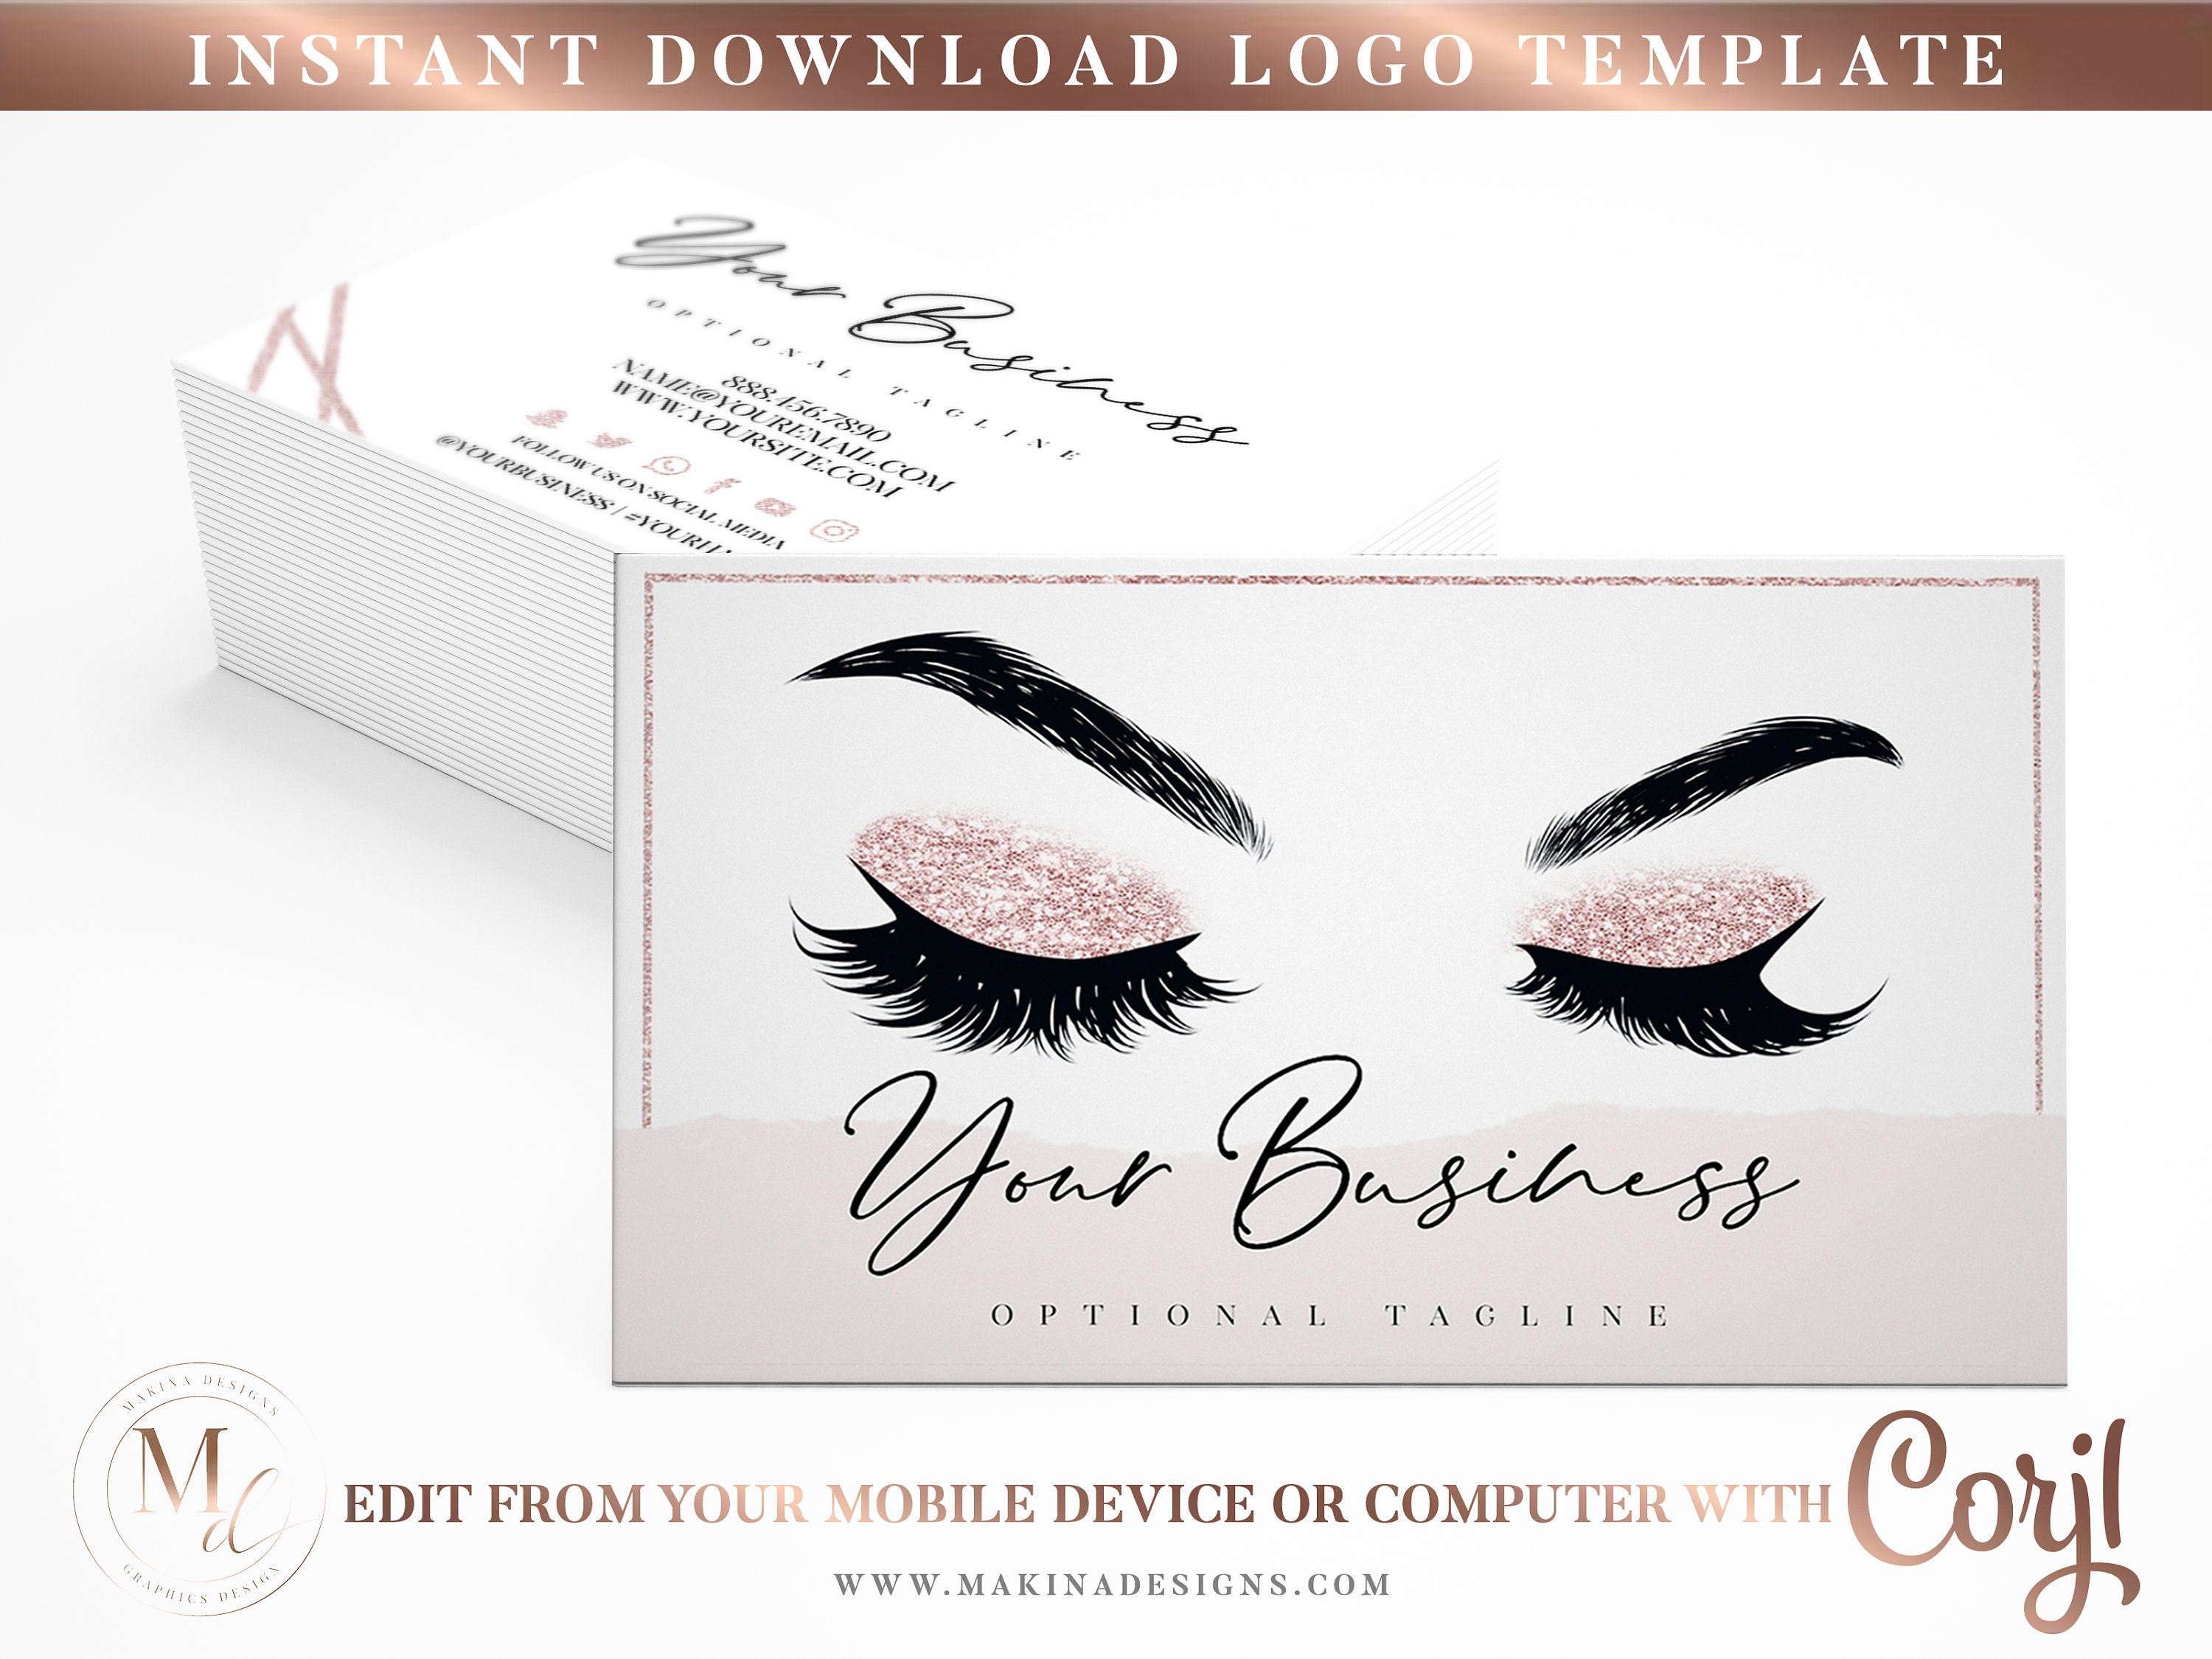 Business Card Template Business Card Card Design Logo Etsy Card Design Card Template Business Card Template